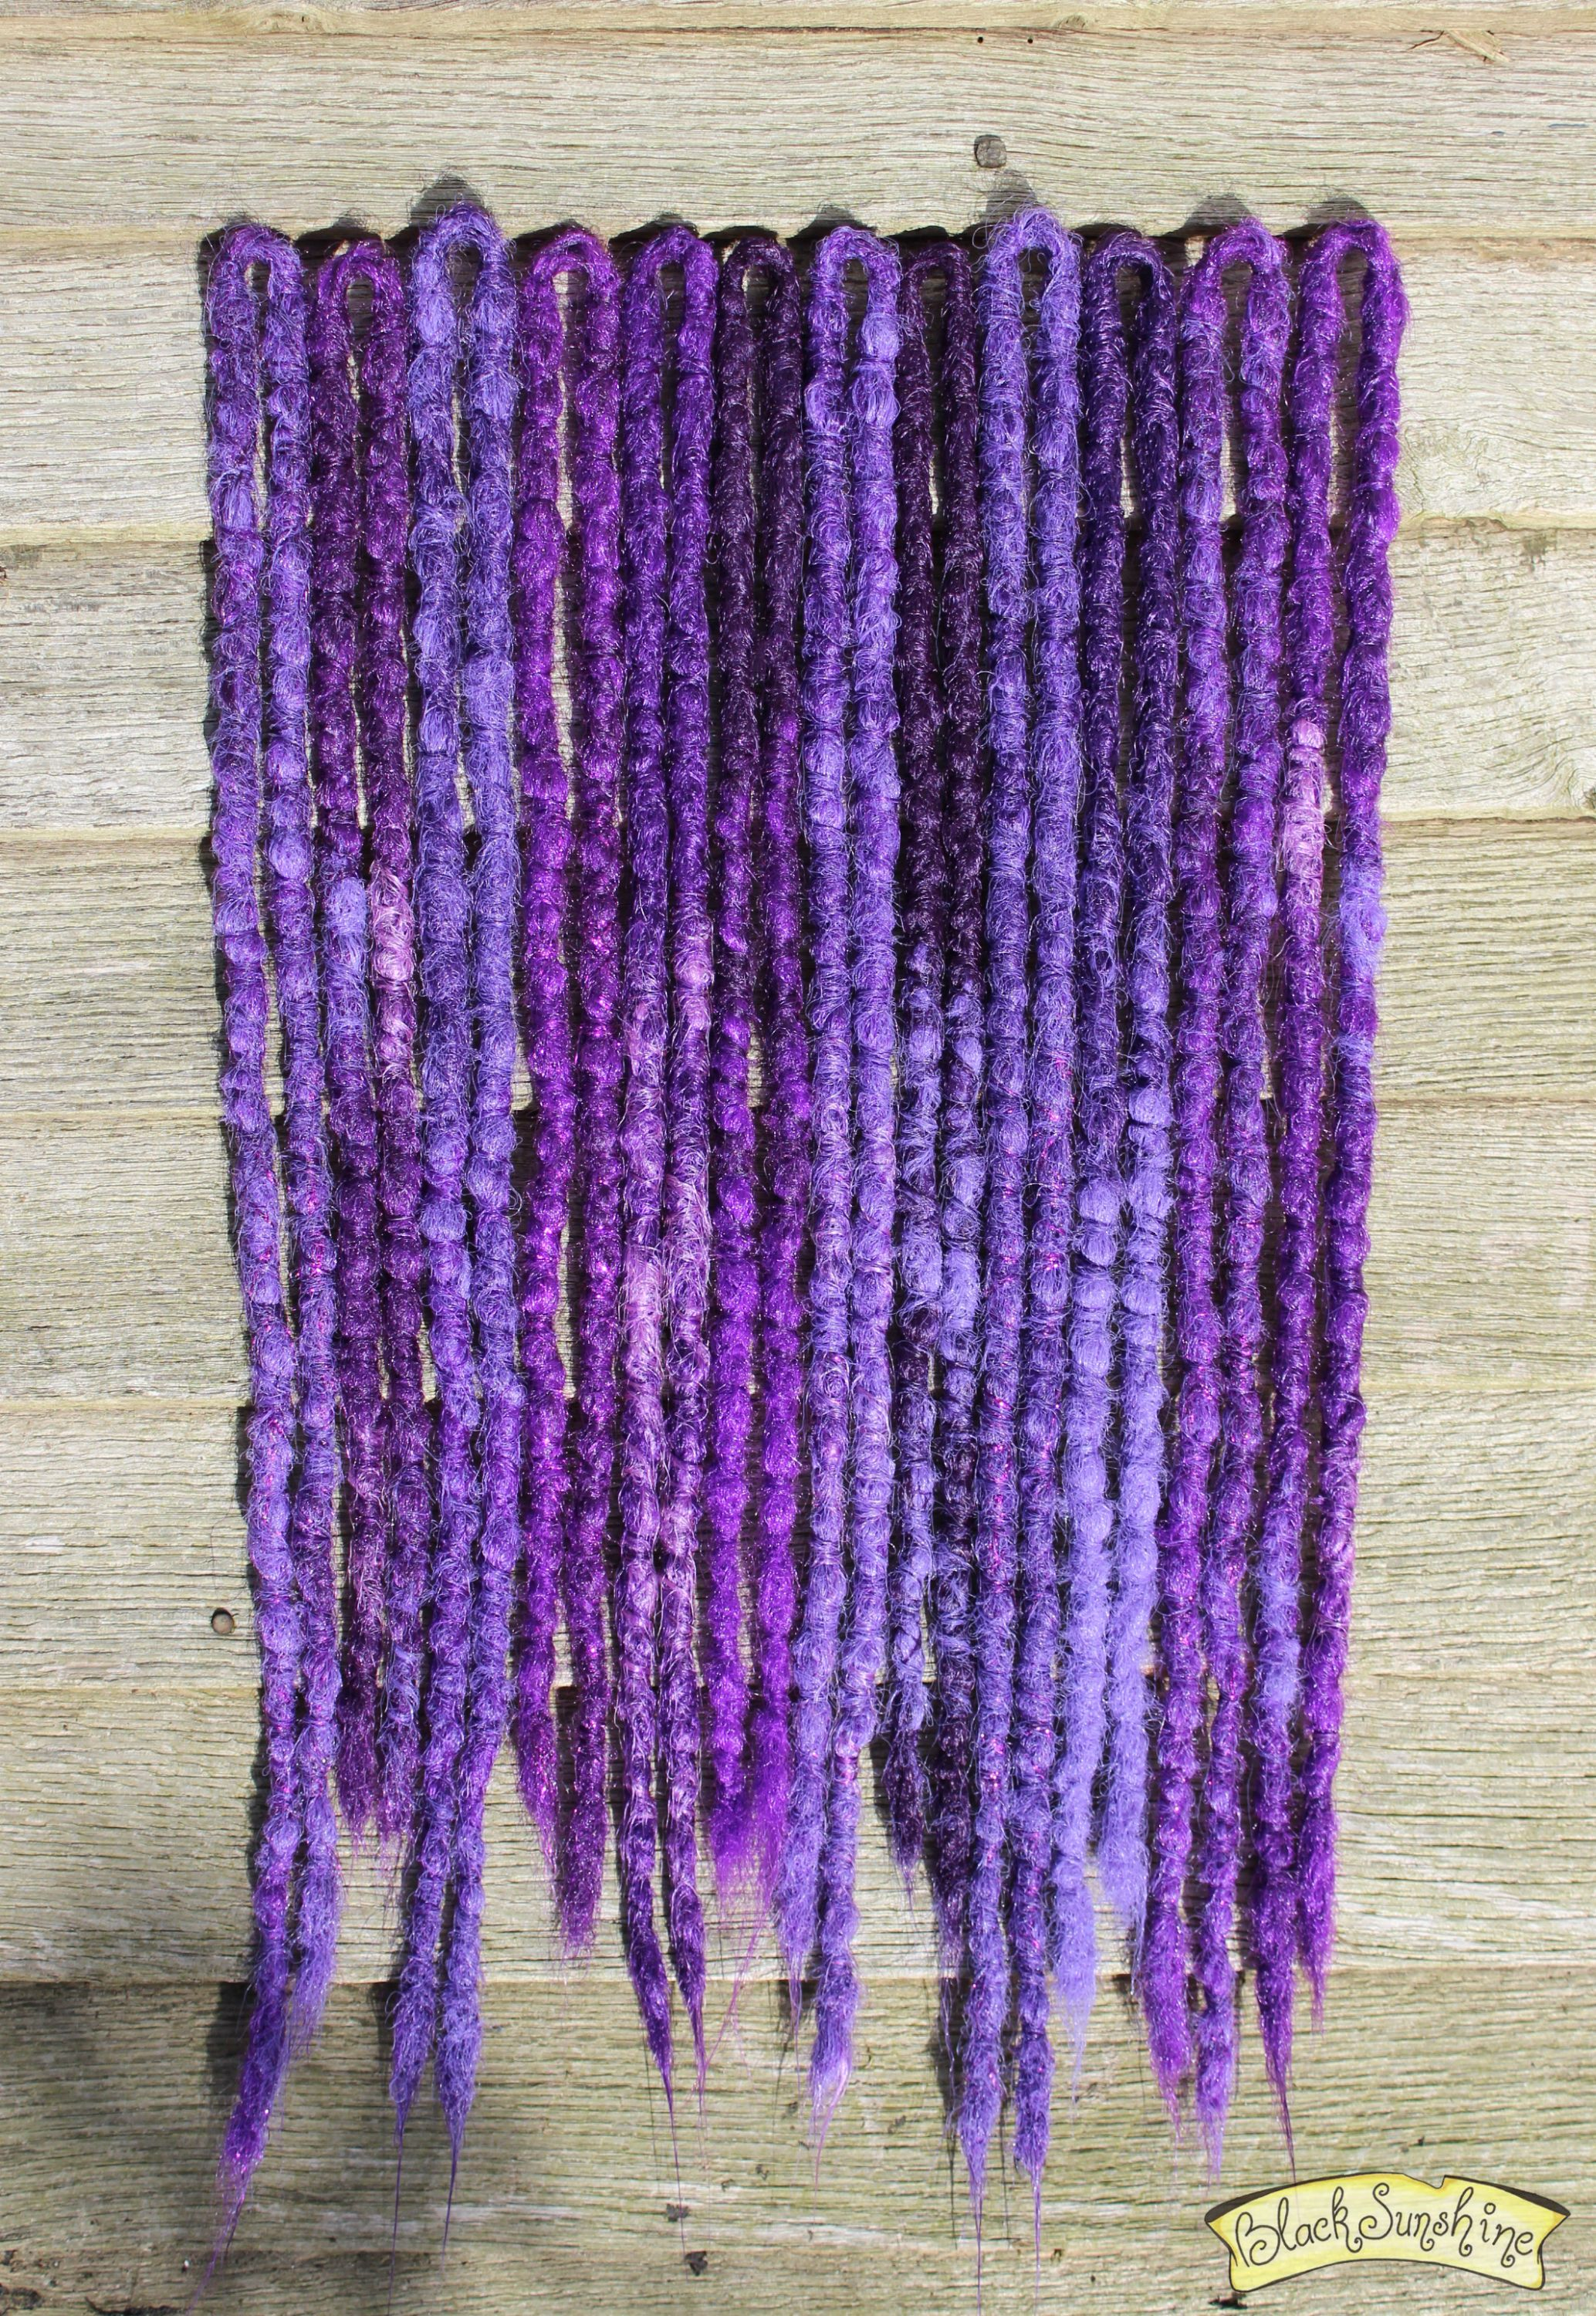 'Purple Rain' Crochet synthetic dreads by Black Sunshine